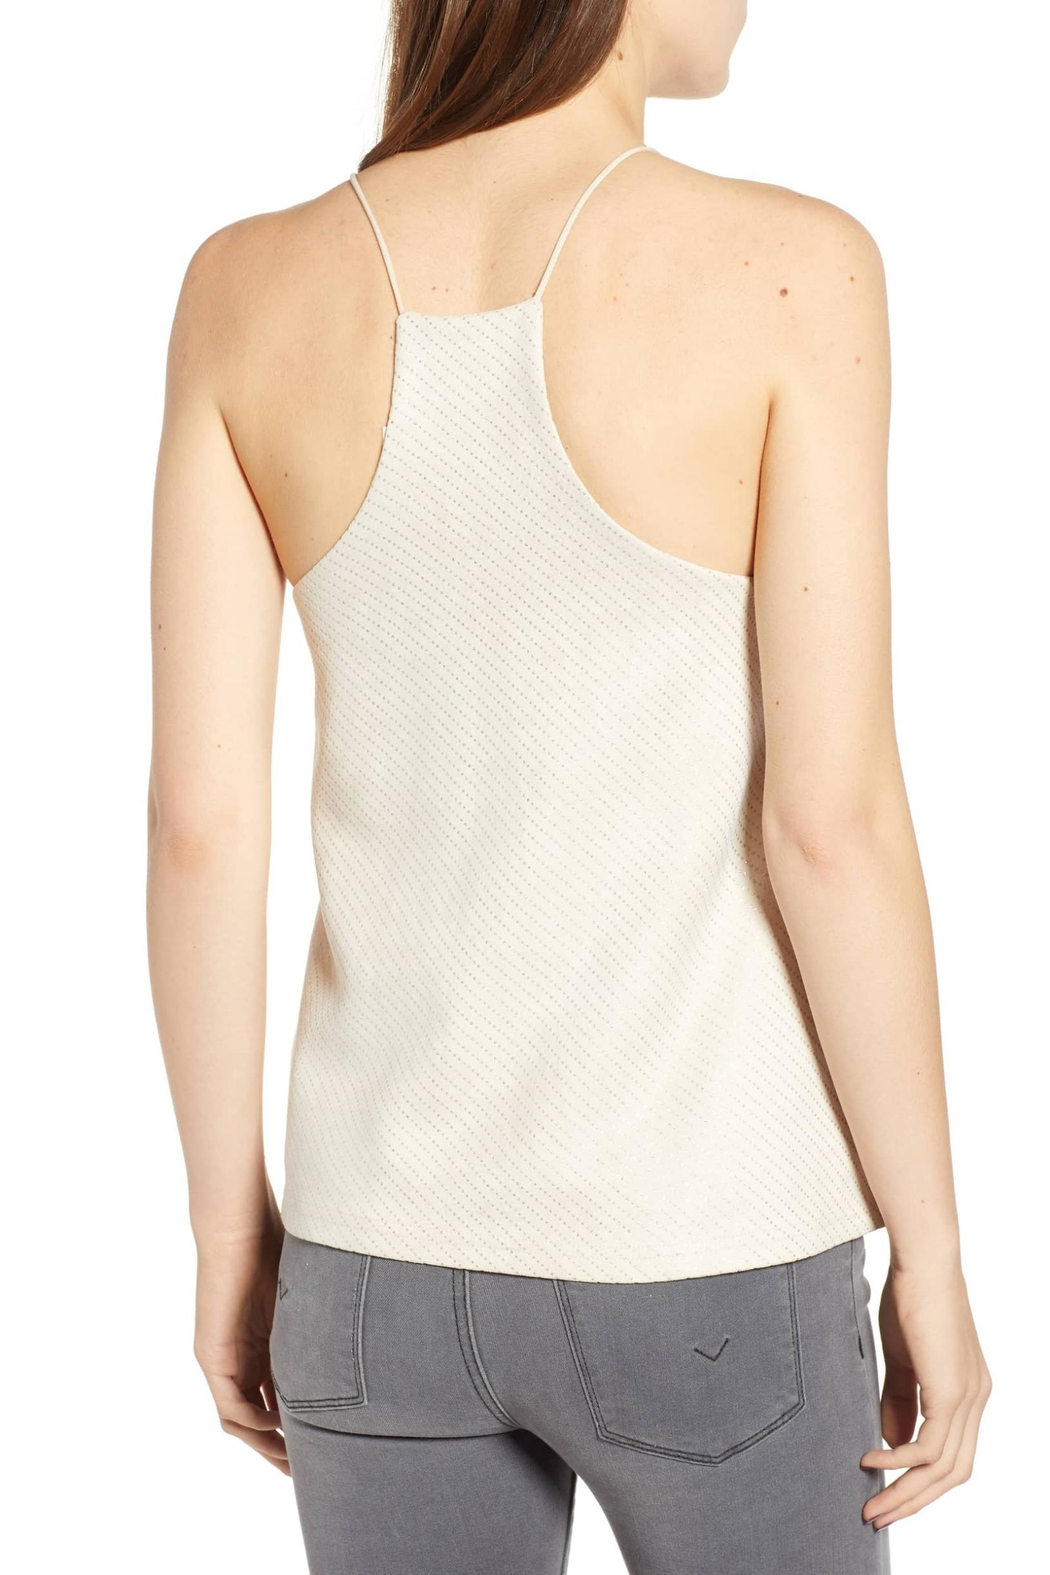 Bishop + Young Micro-Stud Faux-Suede Camisole - Front Full Image